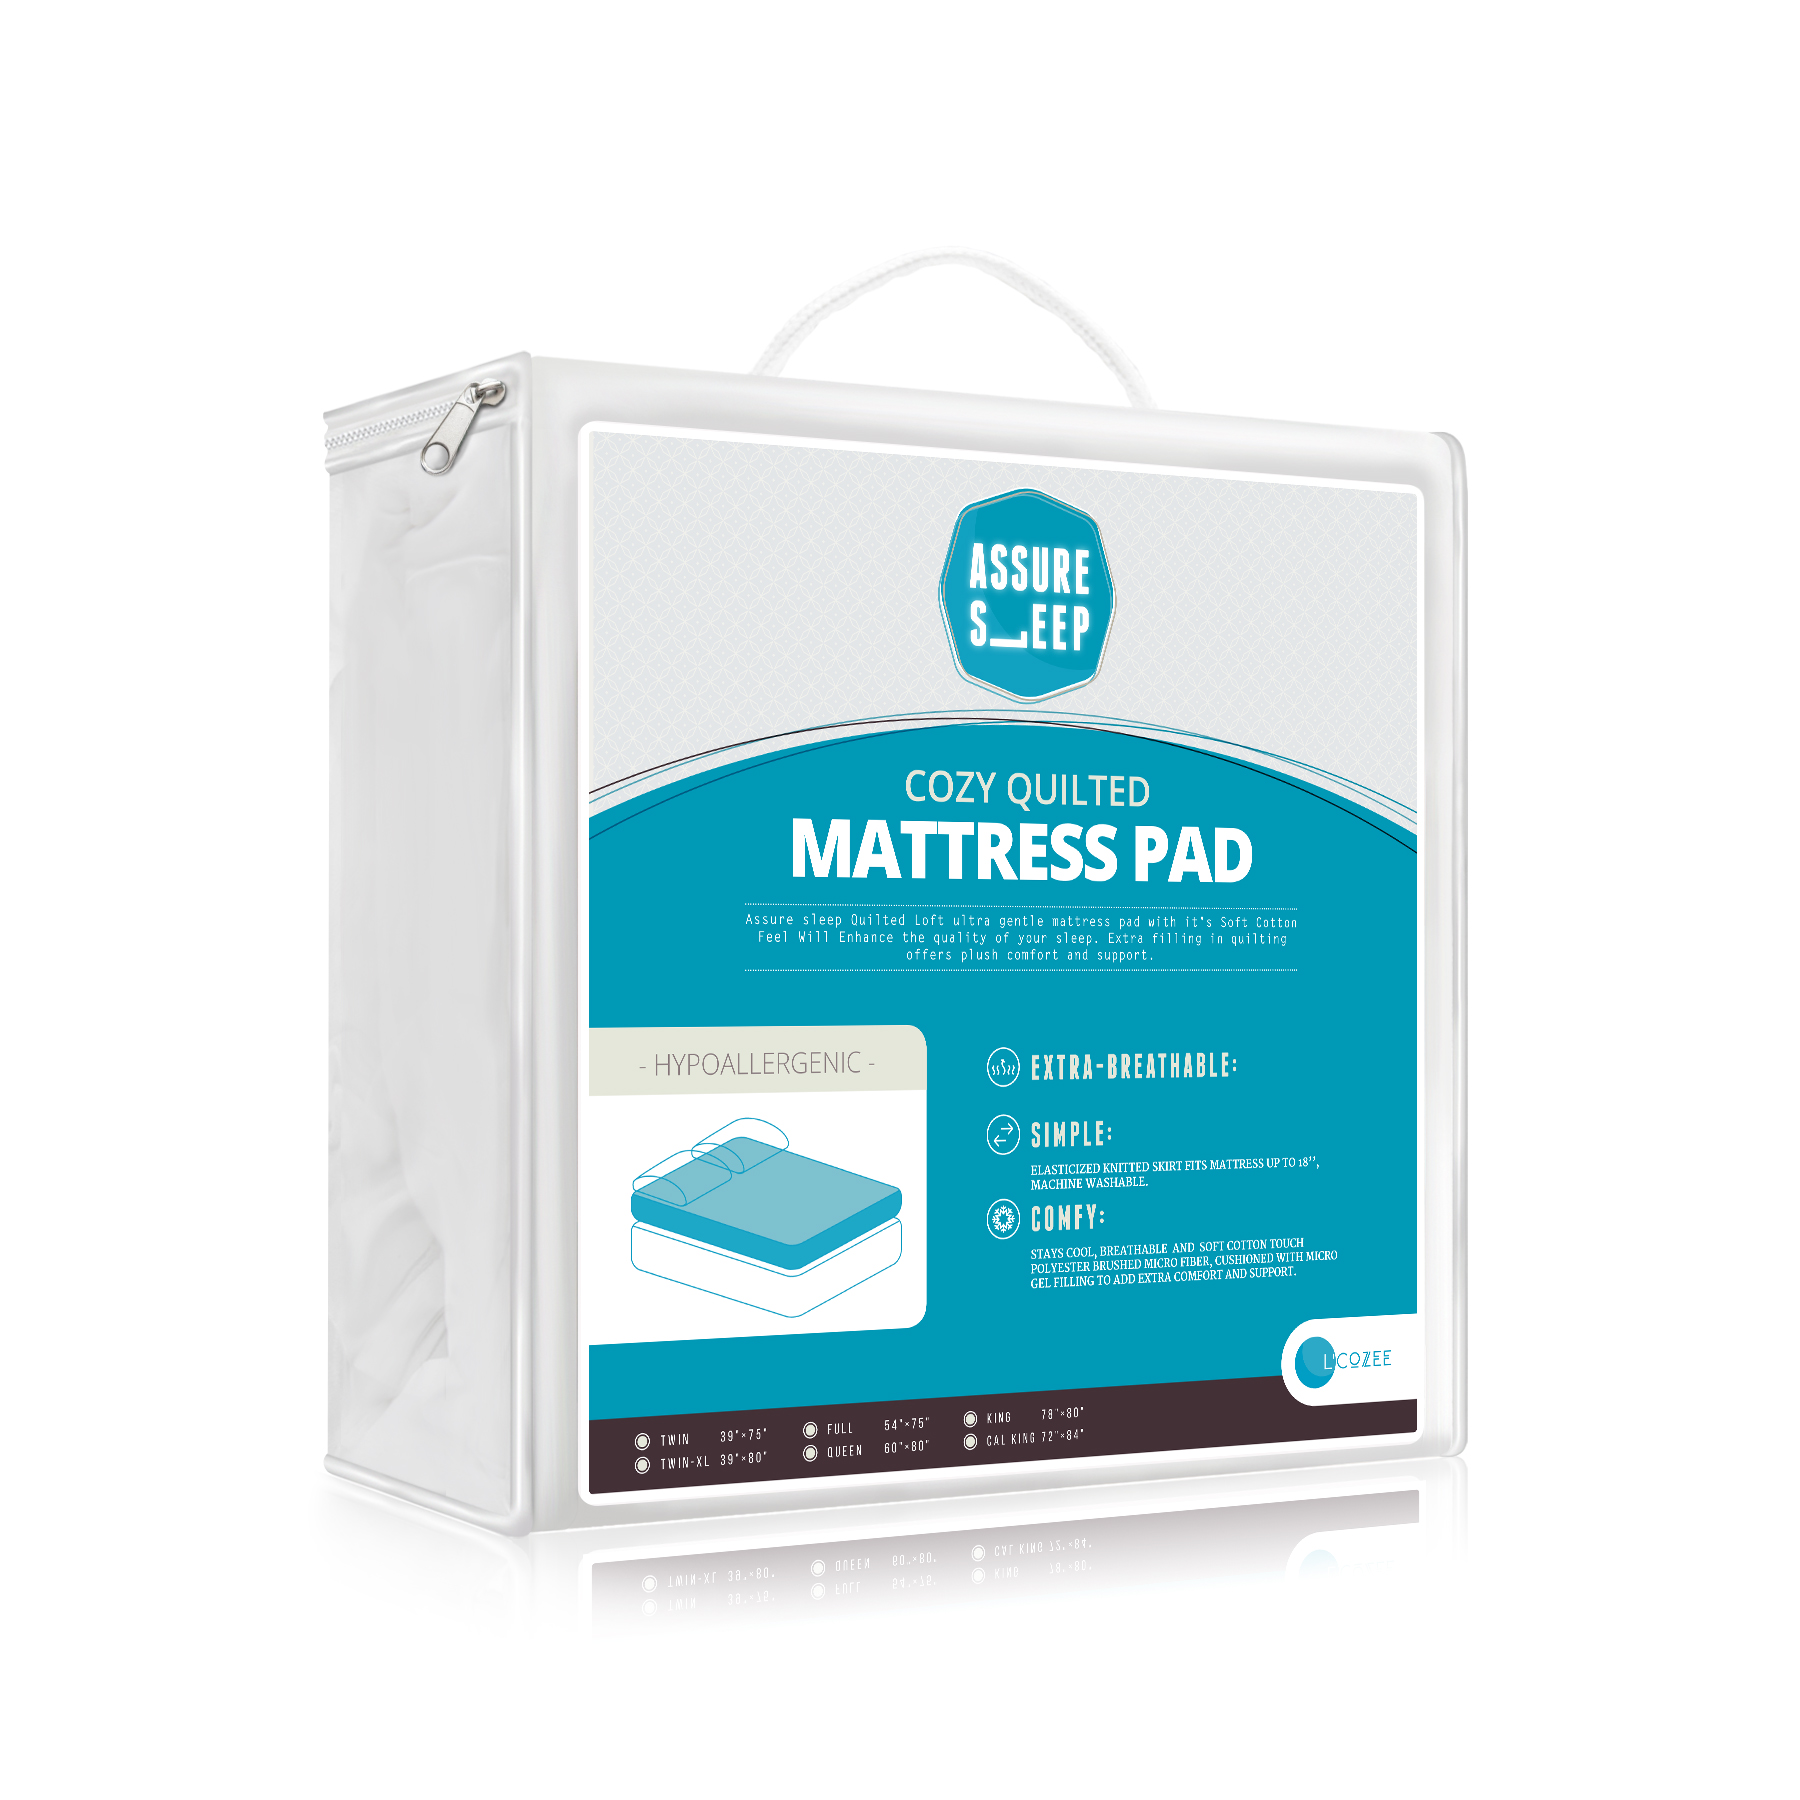 Assure Sleep Quilted Waterproof Mattress Pad Cover King